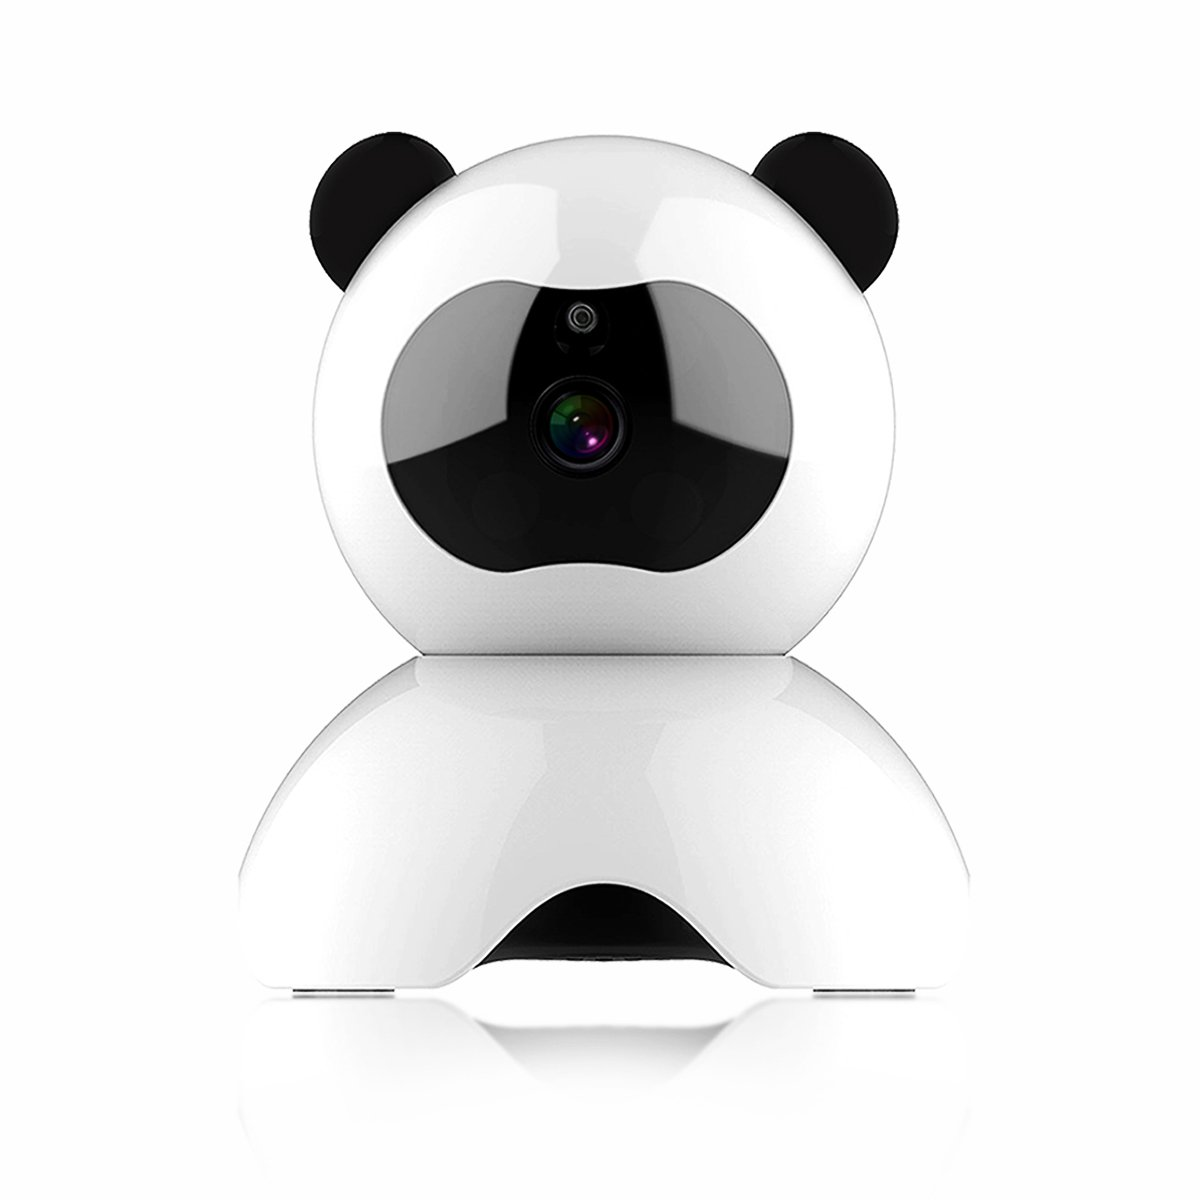 CARMATE Smart Wireless IP Security Surveillance System 720p HD with 2 Way Audio and Night Vision Baby Monitor, Nanny Camera